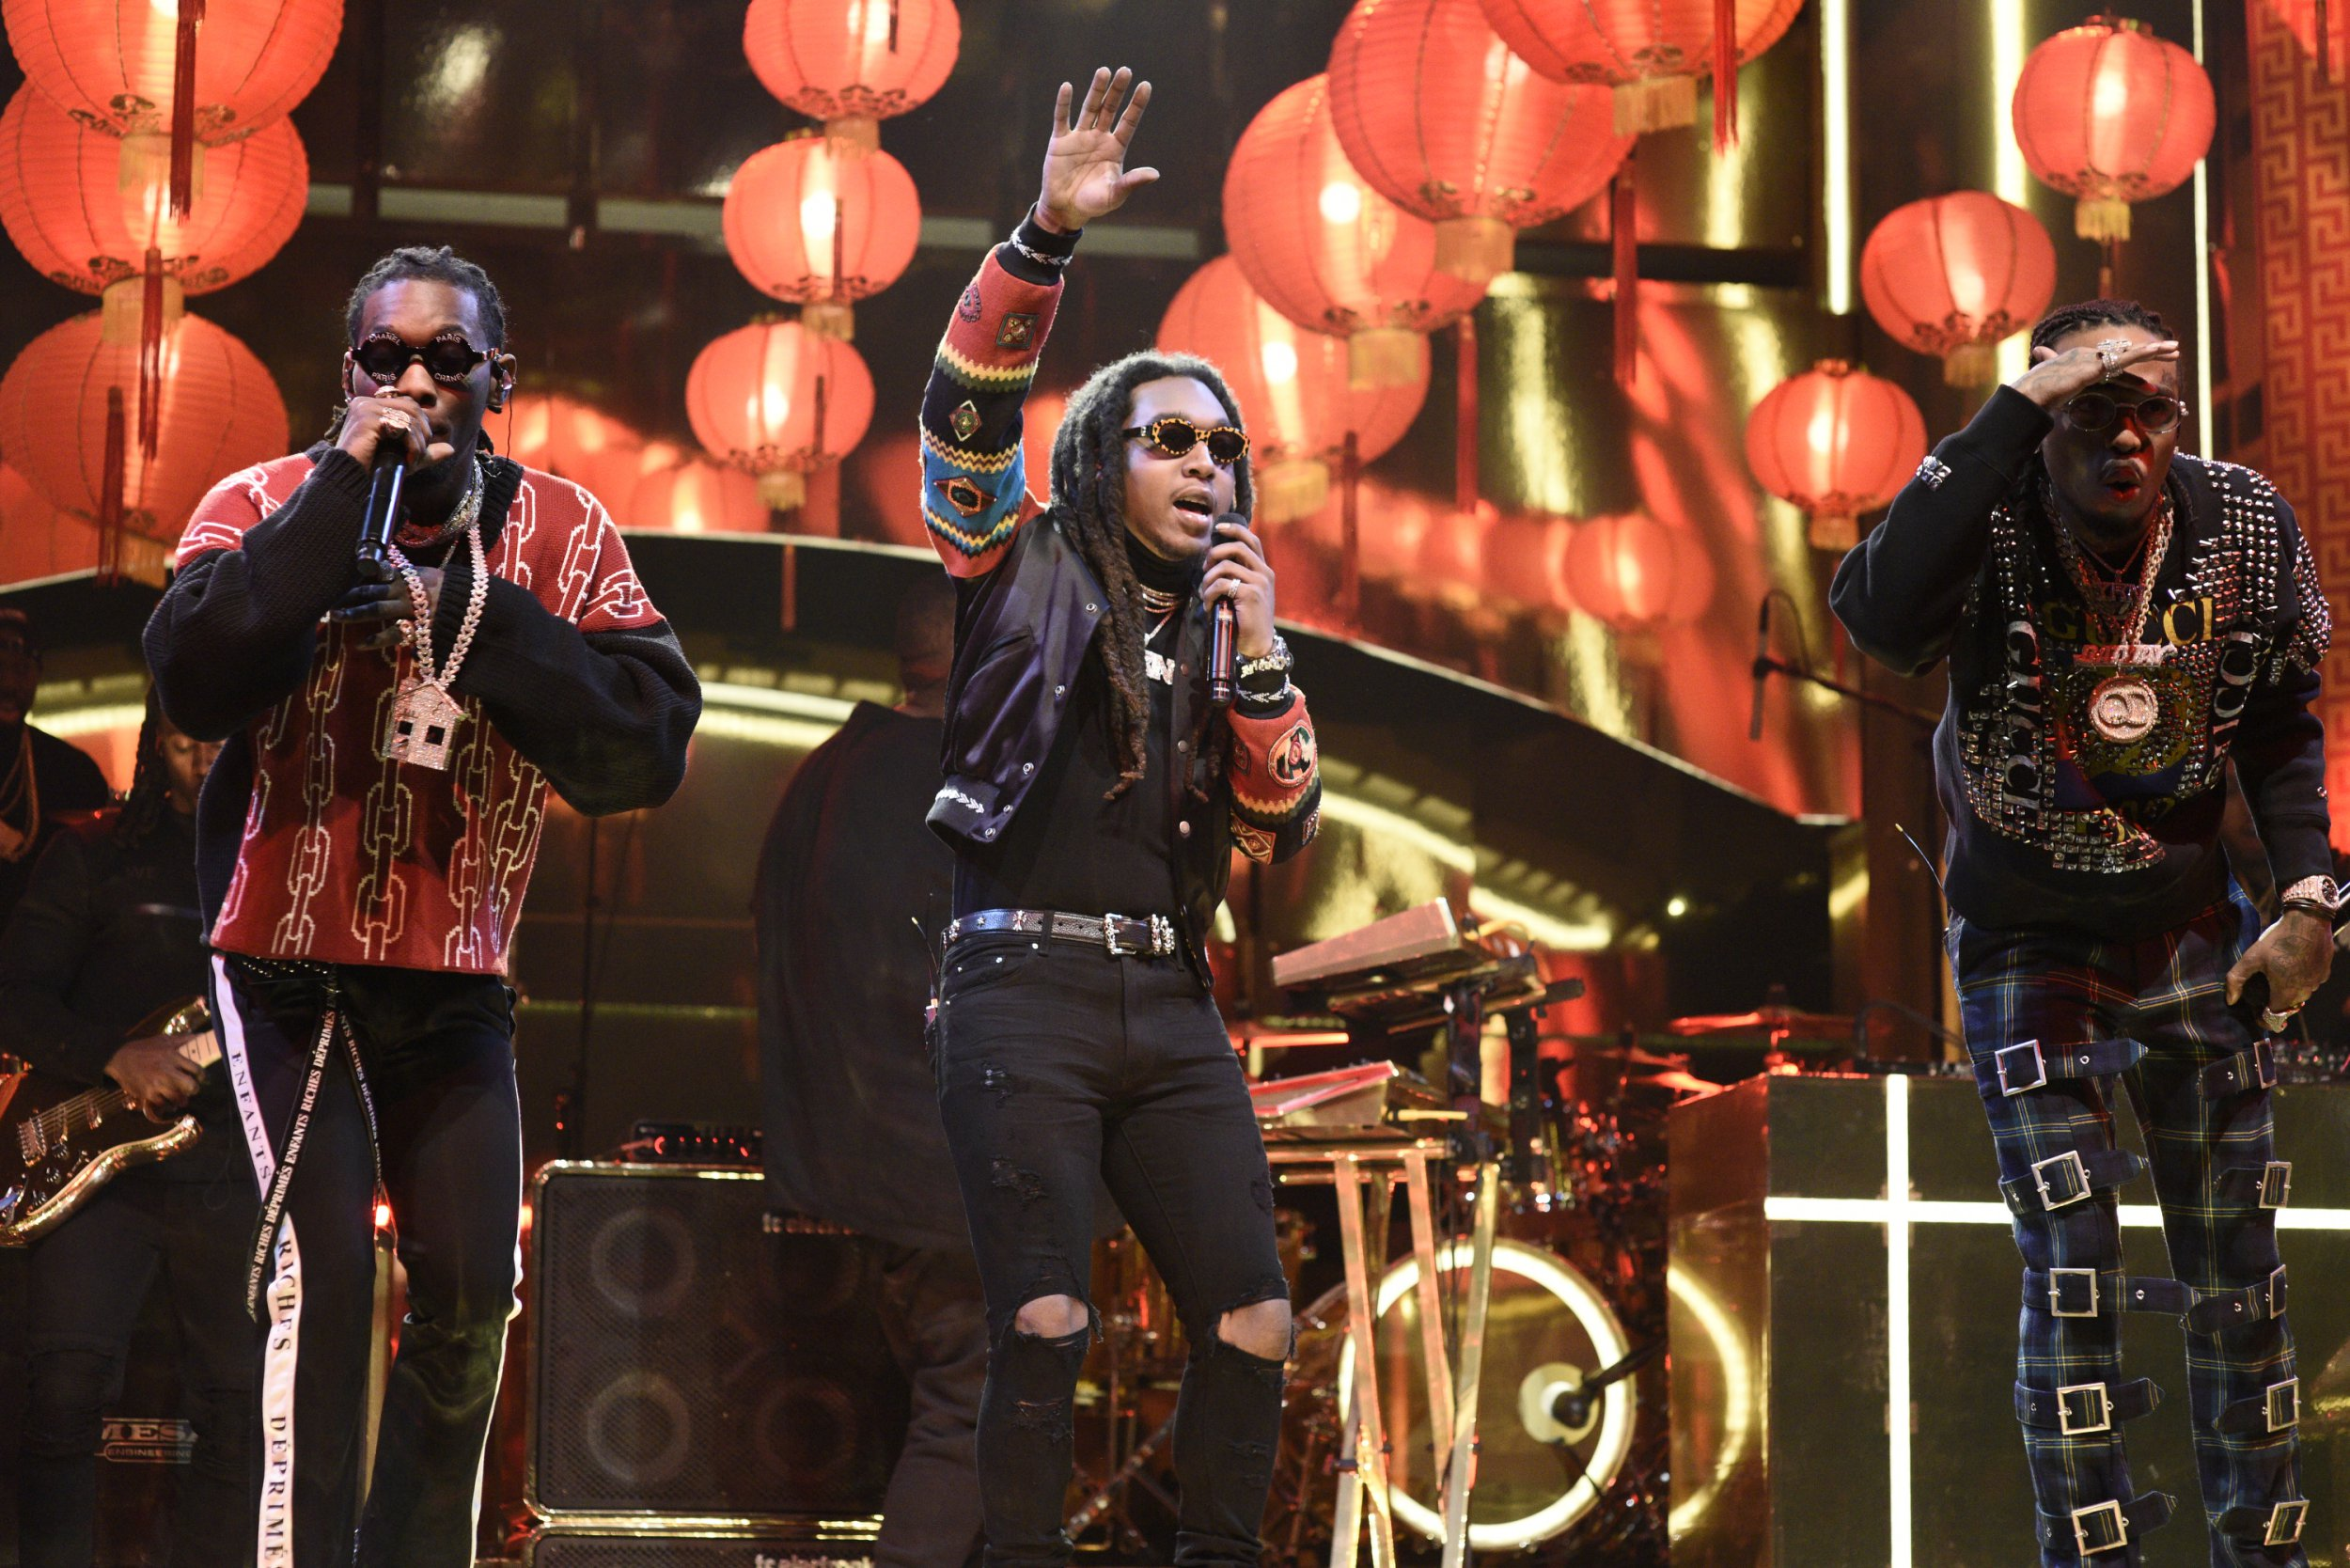 """SATURDAY NIGHT LIVE -- Episode 1739 """"Charles Barkley"""" -- Pictured: Musical Guest Migos performs """"Stir Fy"""" in Studio 8H on Saturday, March 3, 2018 -- (Photo by: Will Heath/NBC/NBCU Photo Bank via Getty Images)"""